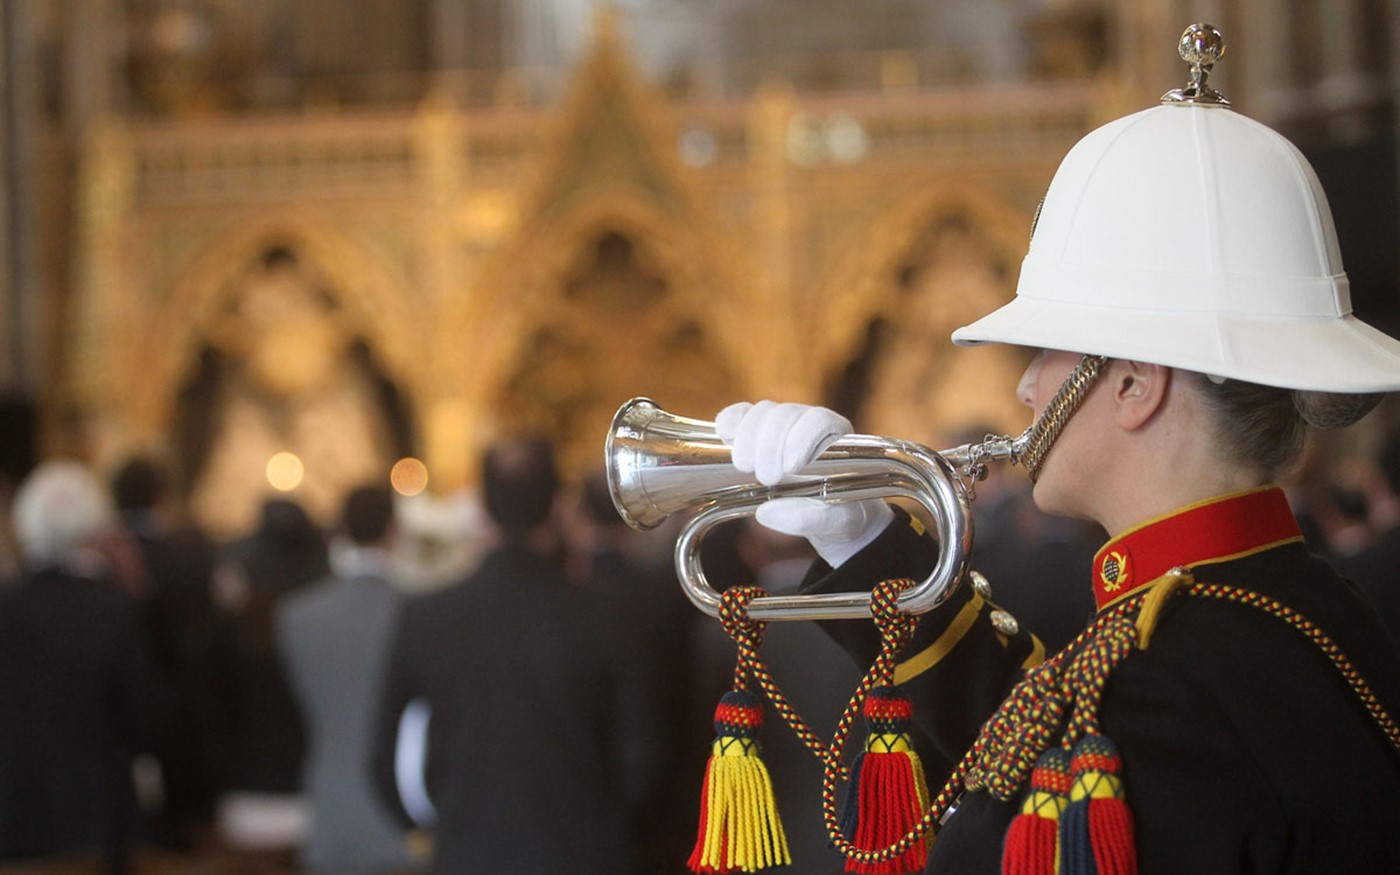 A trumpeter from the Royal Marine plays Reveille